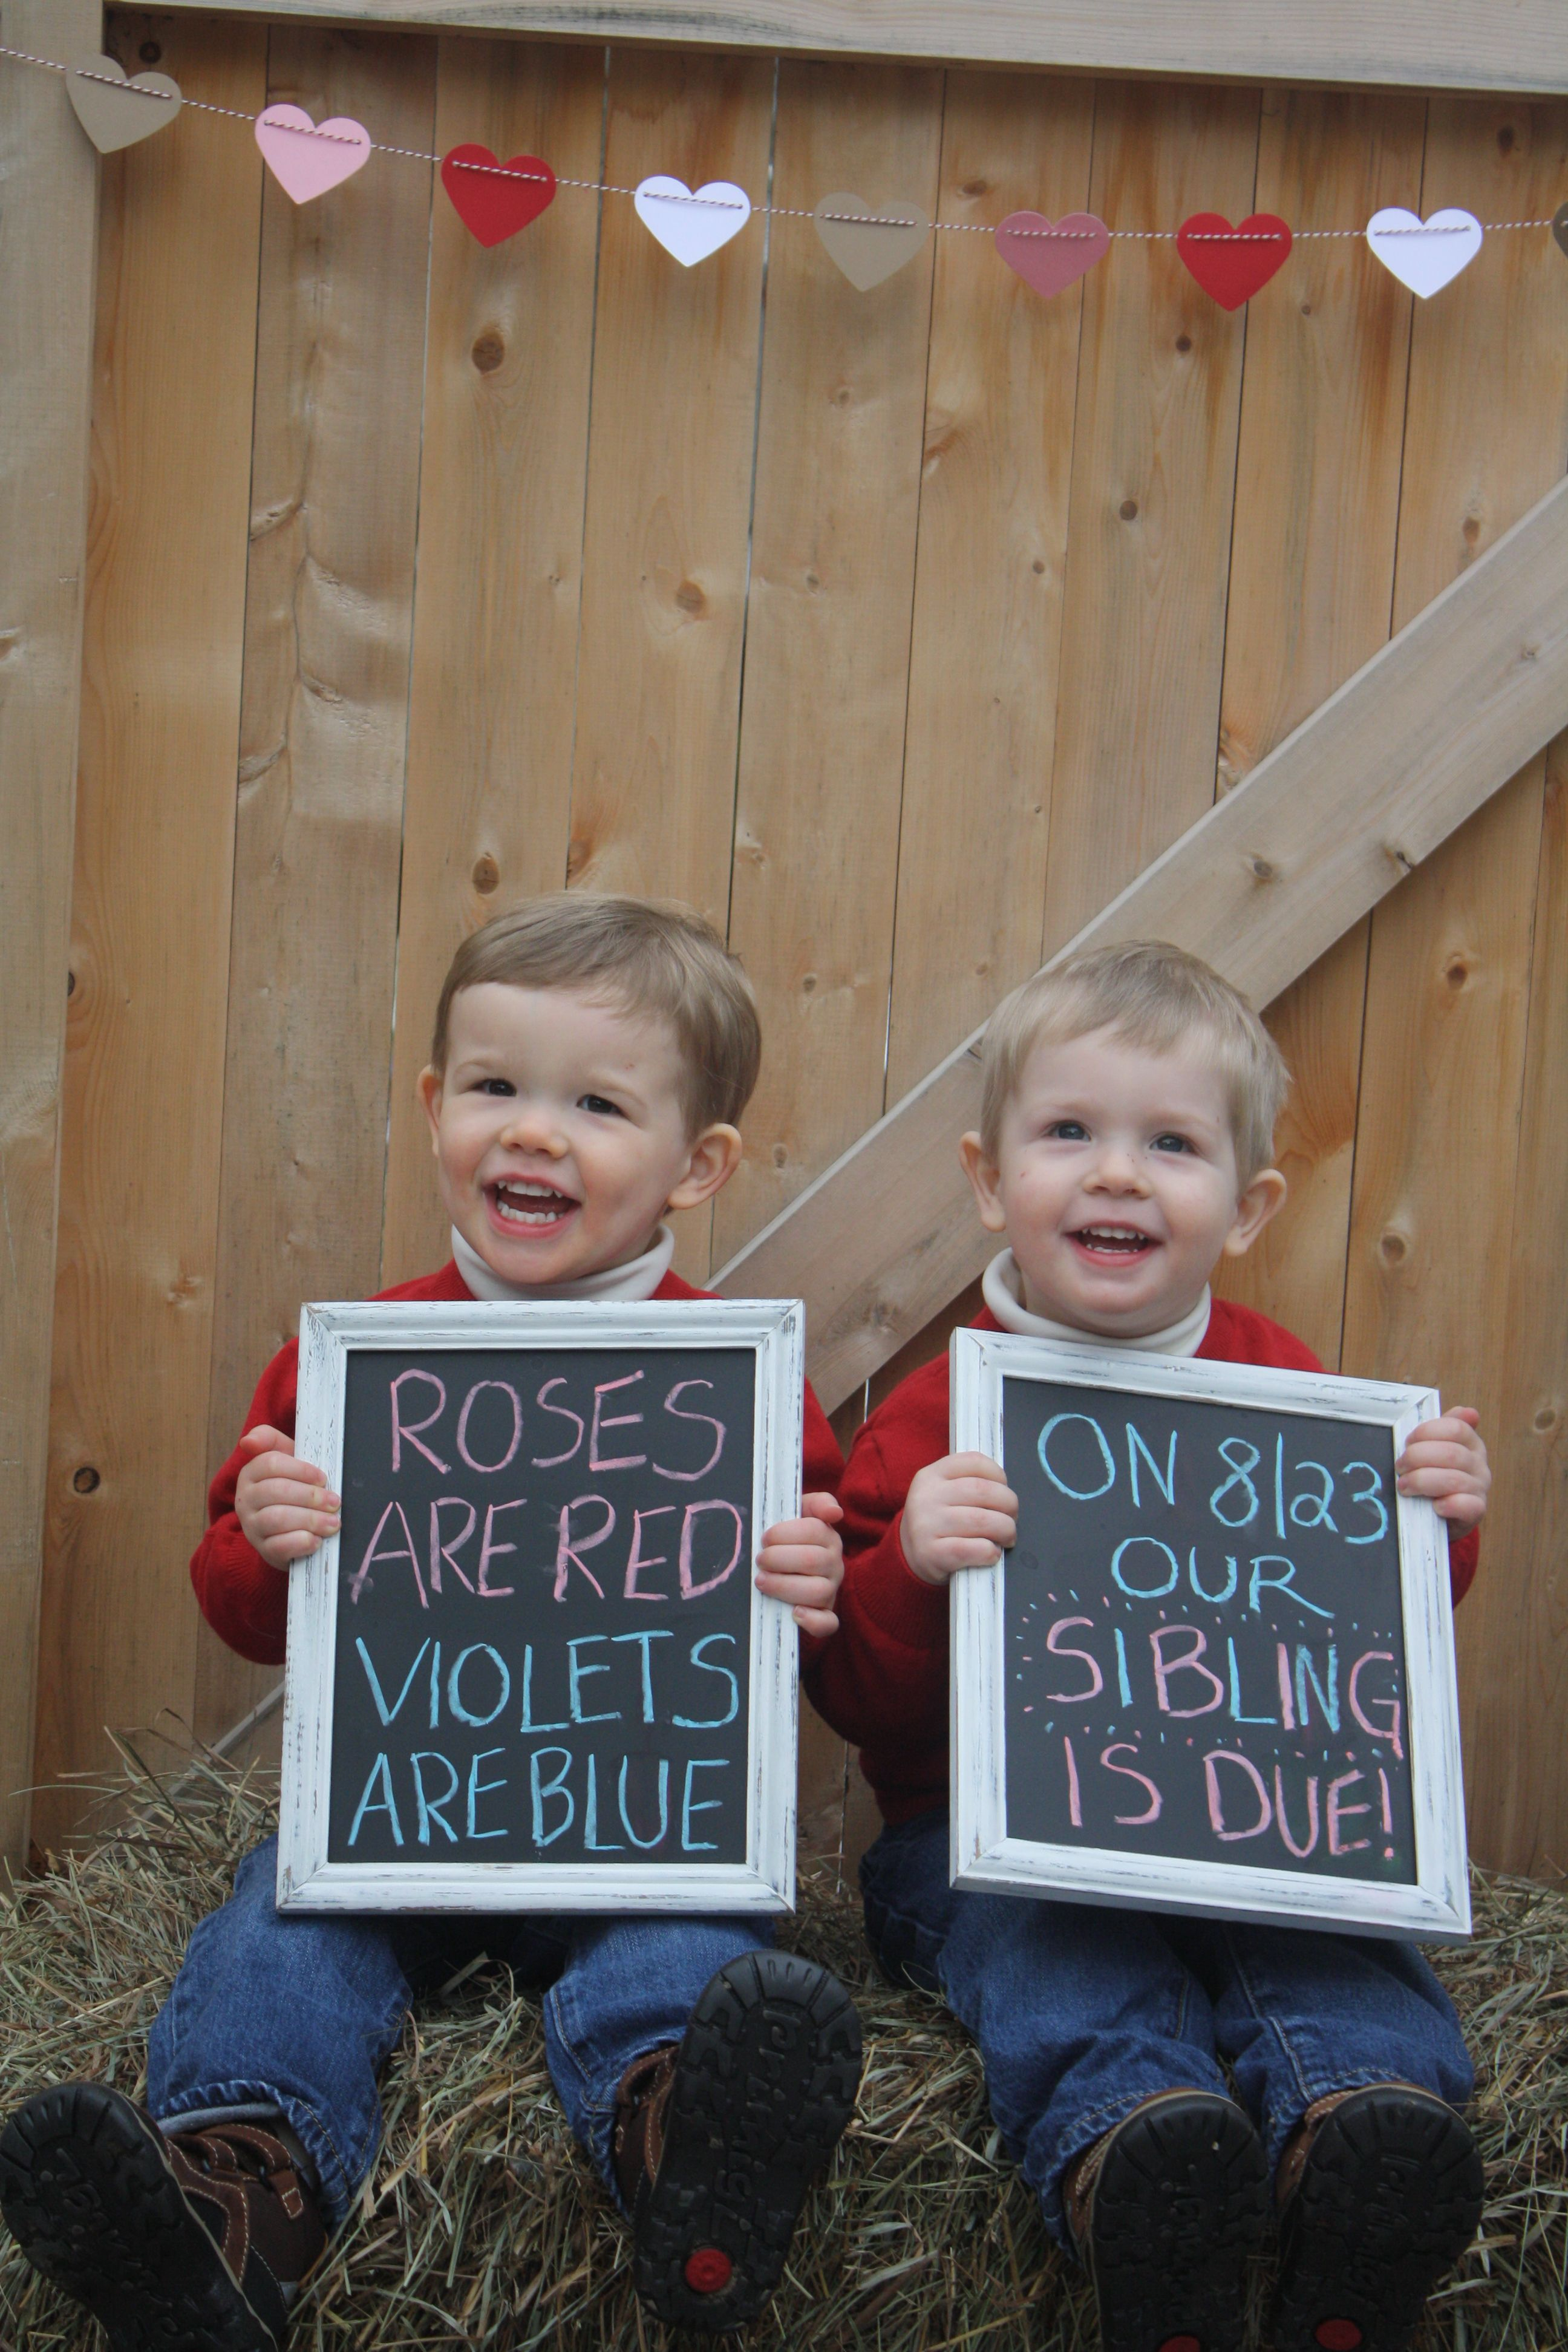 Roses Are Red Violets Are Blue Baby Announcement : roses, violets, announcement, Pregnancy, Announcement